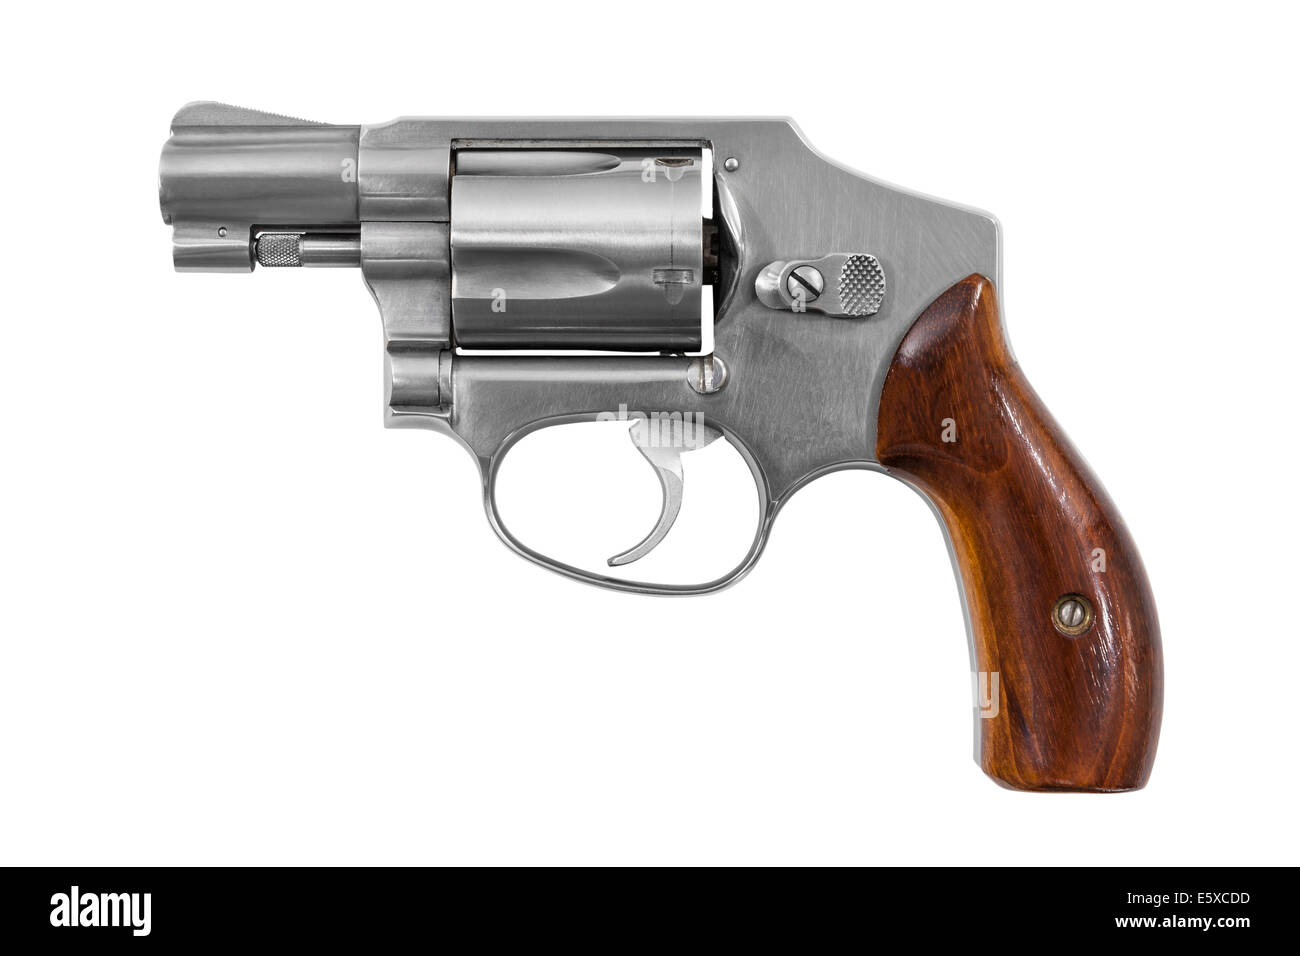 Five shot 38 caliber single action revolver handgun isolated with clipping path. - Stock Image